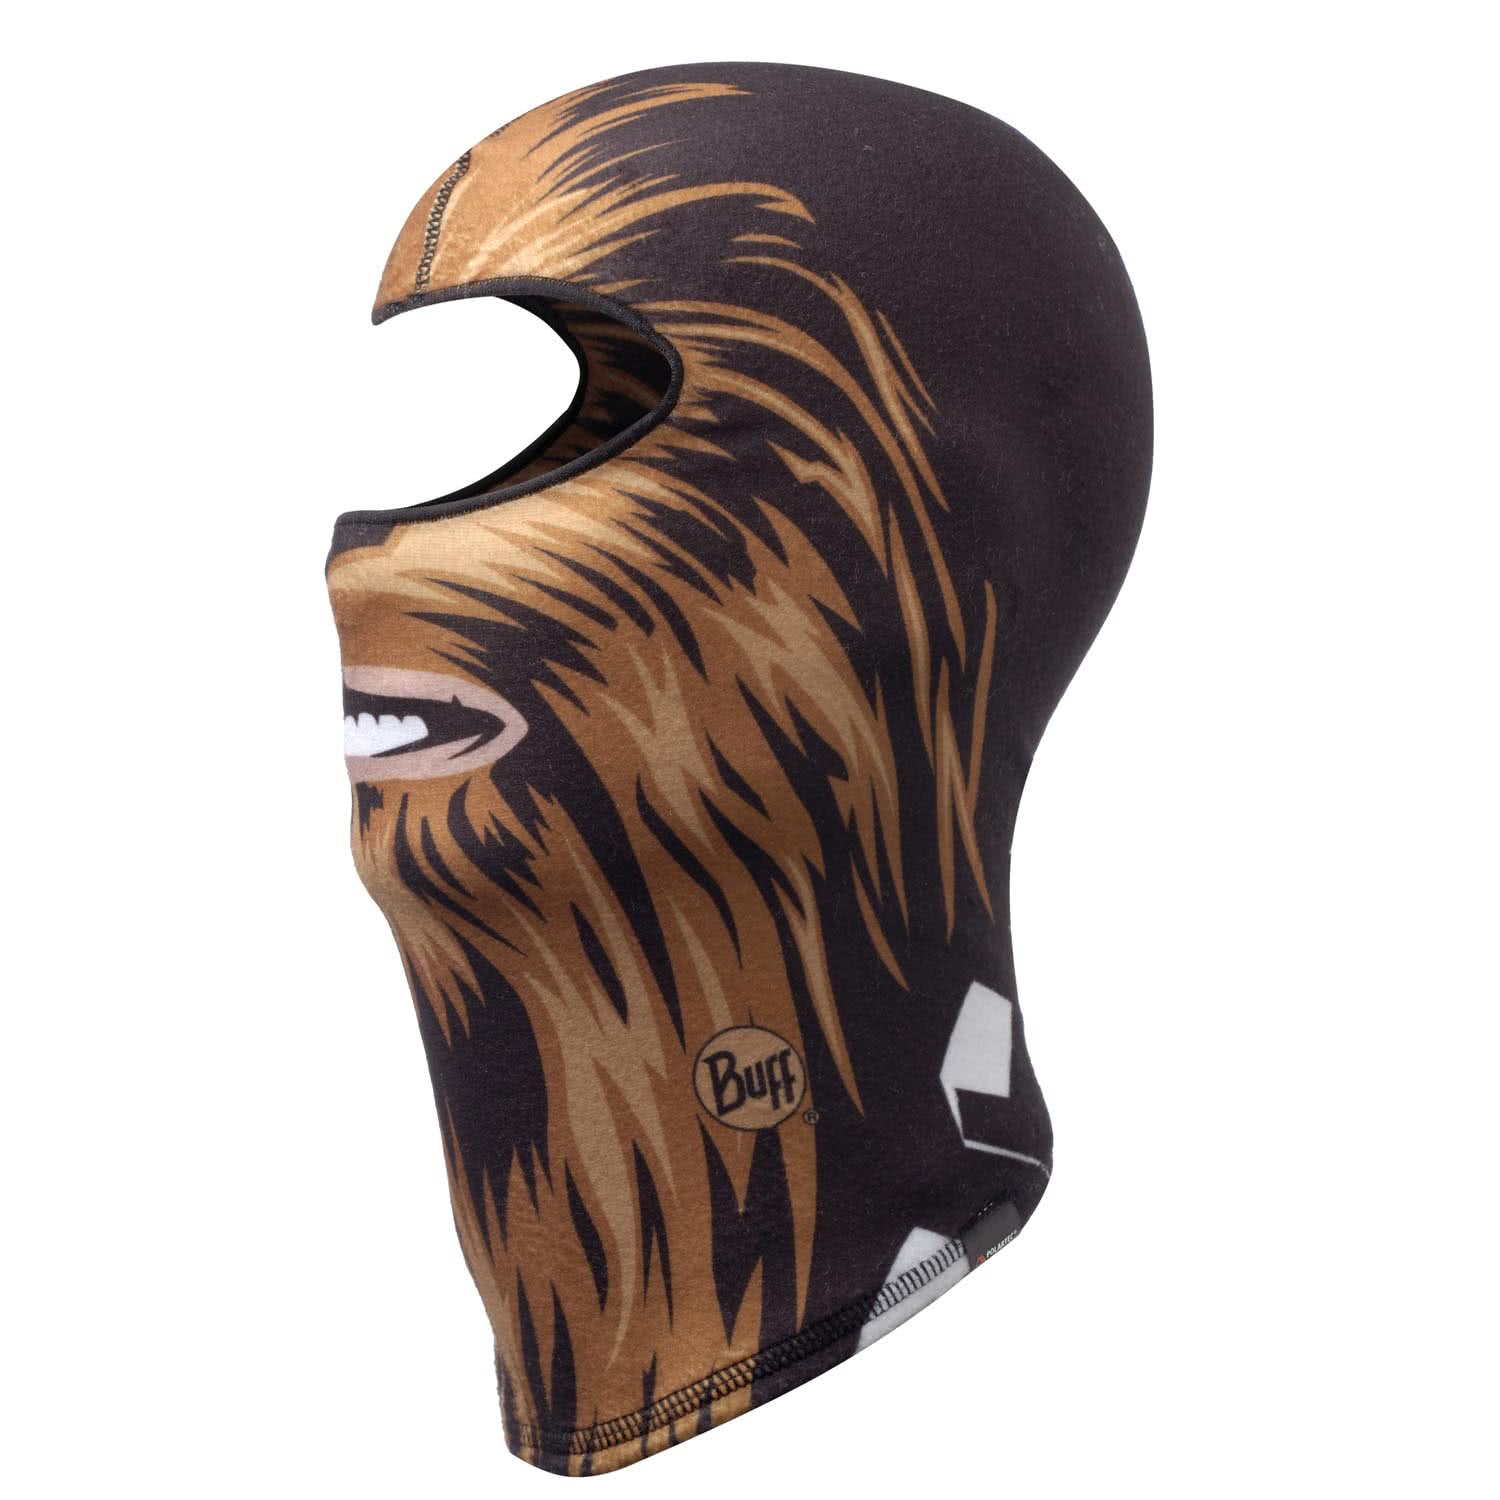 uk billig verkaufen heiß-verkauf freiheit heißer verkauf authentisch Buff Kinder Sturmhaube Polar Balaclava Licenses BUFF 115435-325 Chewbacca  Brown/White | One size | cortexpower.de